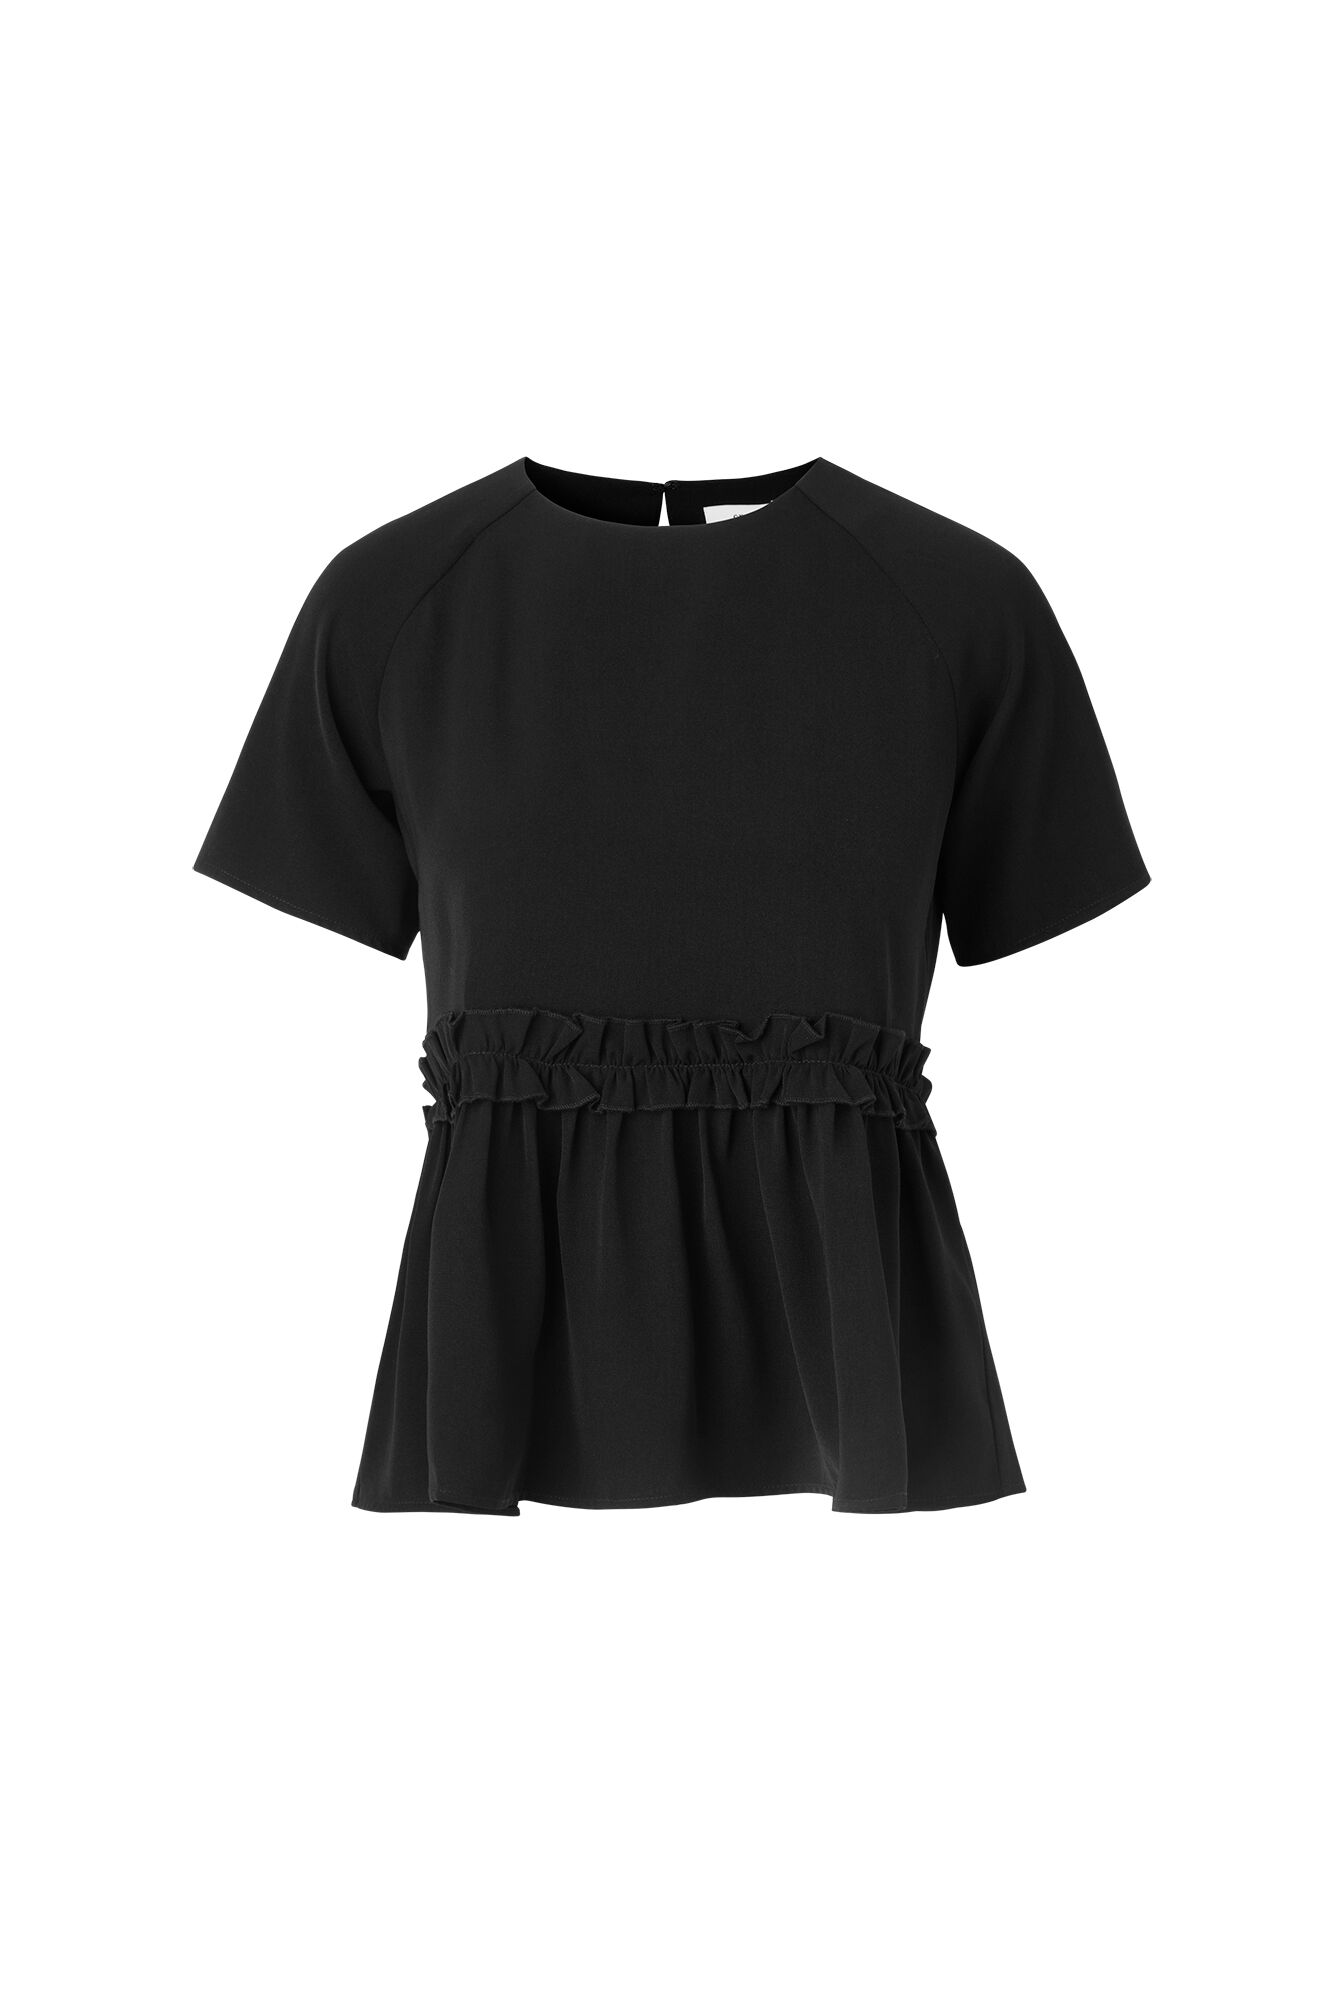 ENAPOLLO SS TOP 6490, BLACK